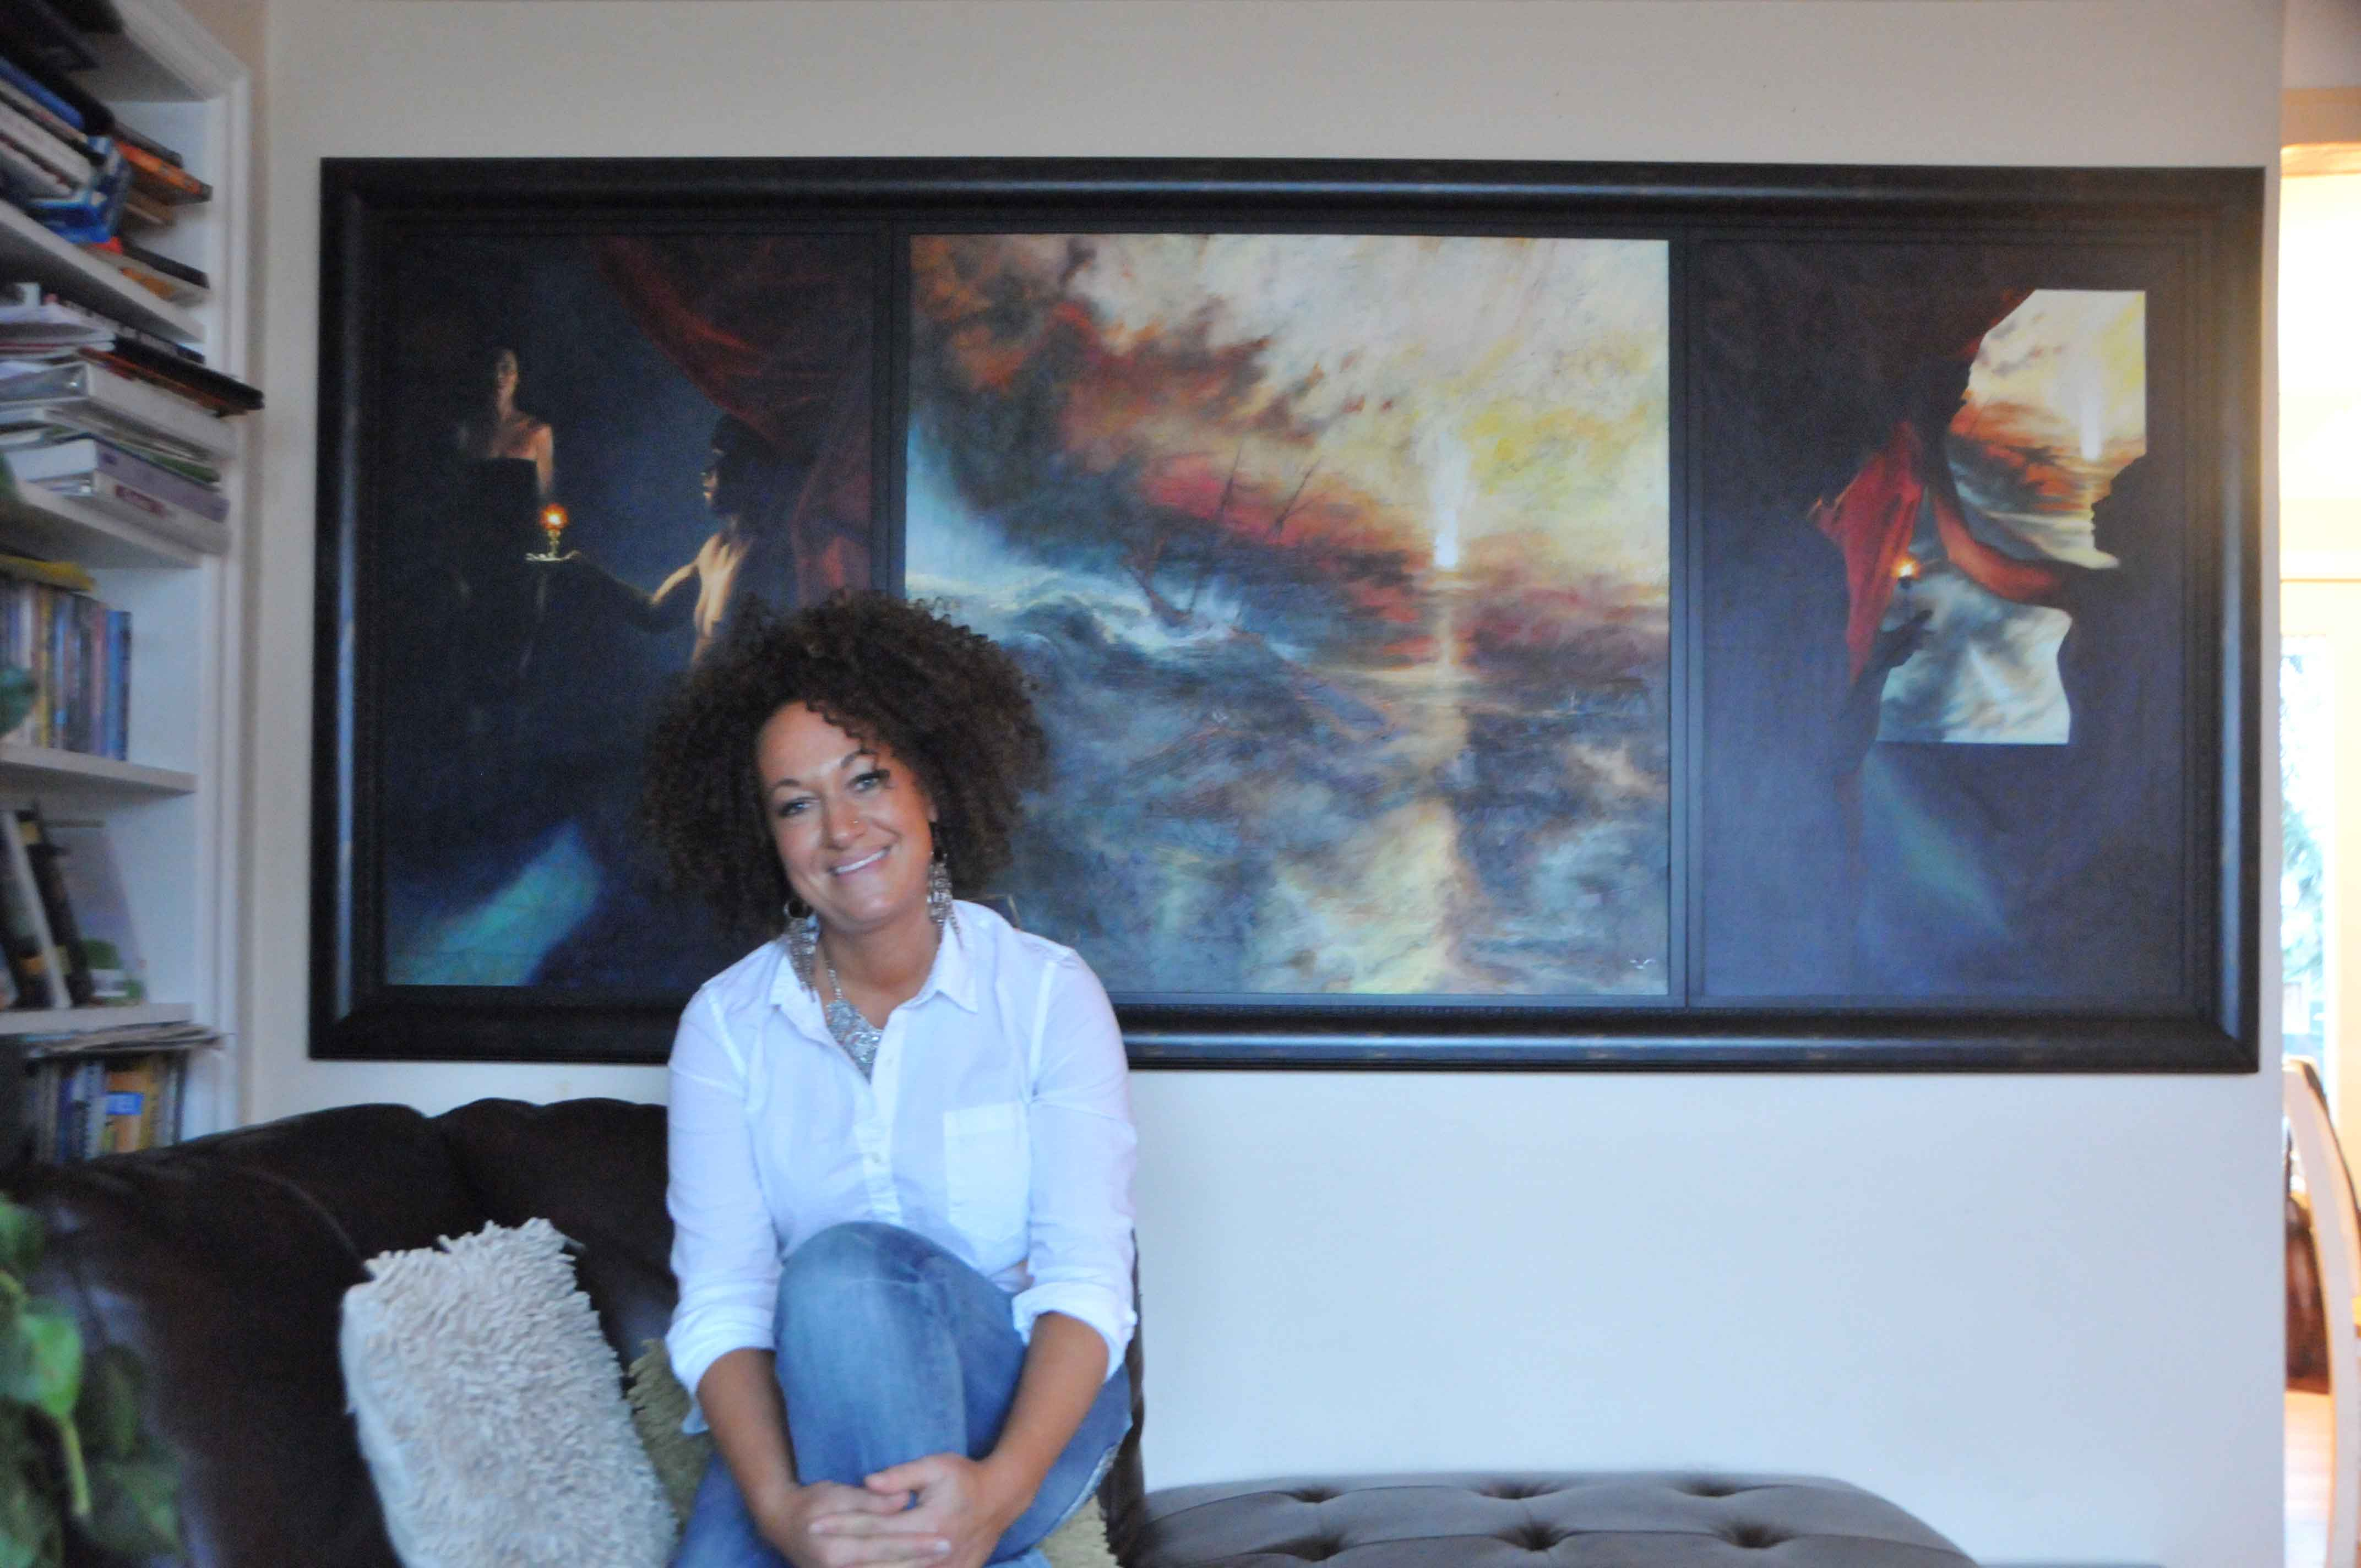 Rachel Dolezal, an EWU Professor, sits on a couch at her home in front of an original painting she created. Dolezal obtained her master's in fine arts at Howard University.